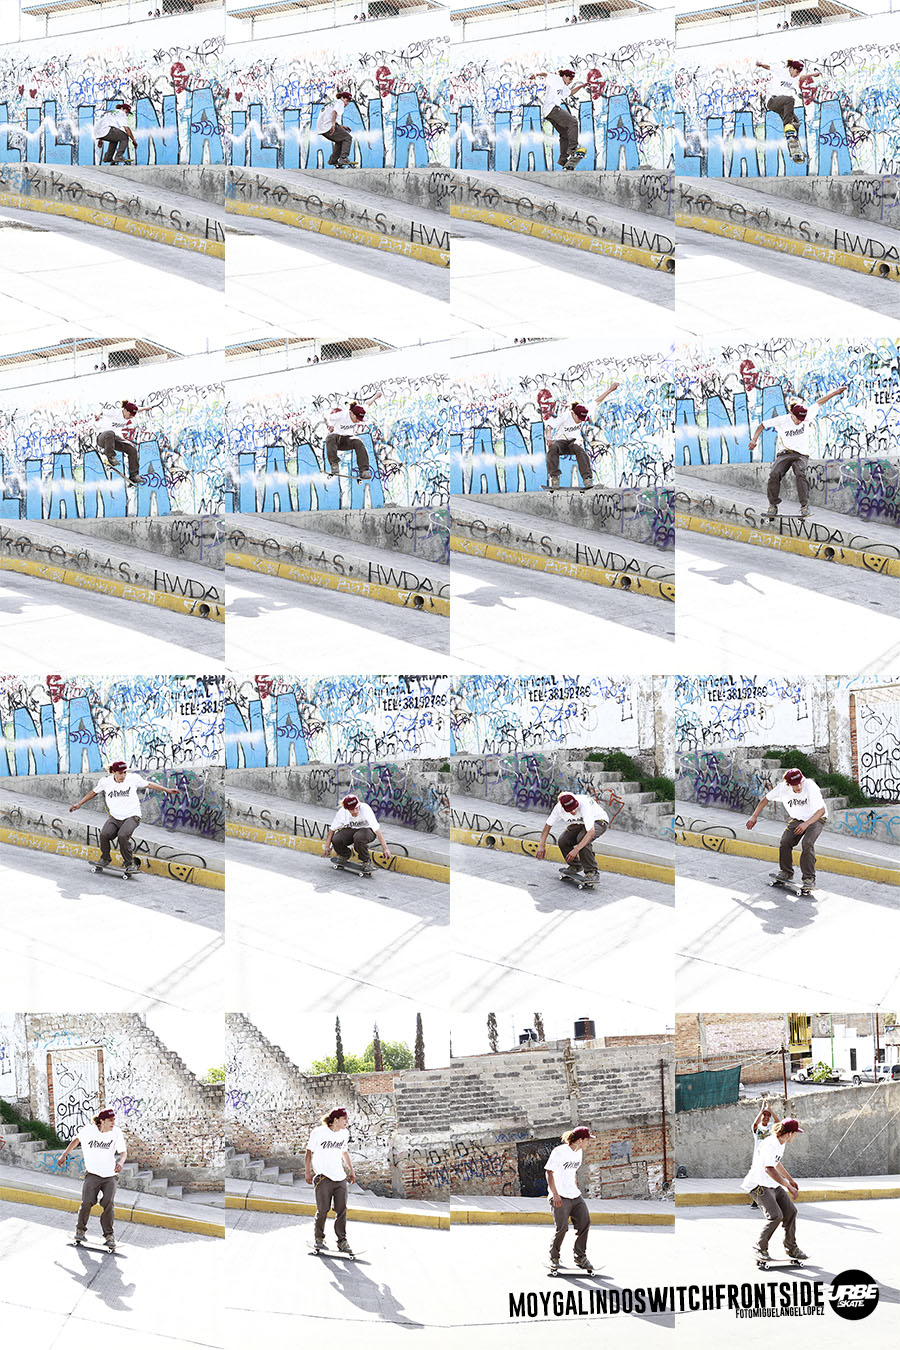 Switch Frontside